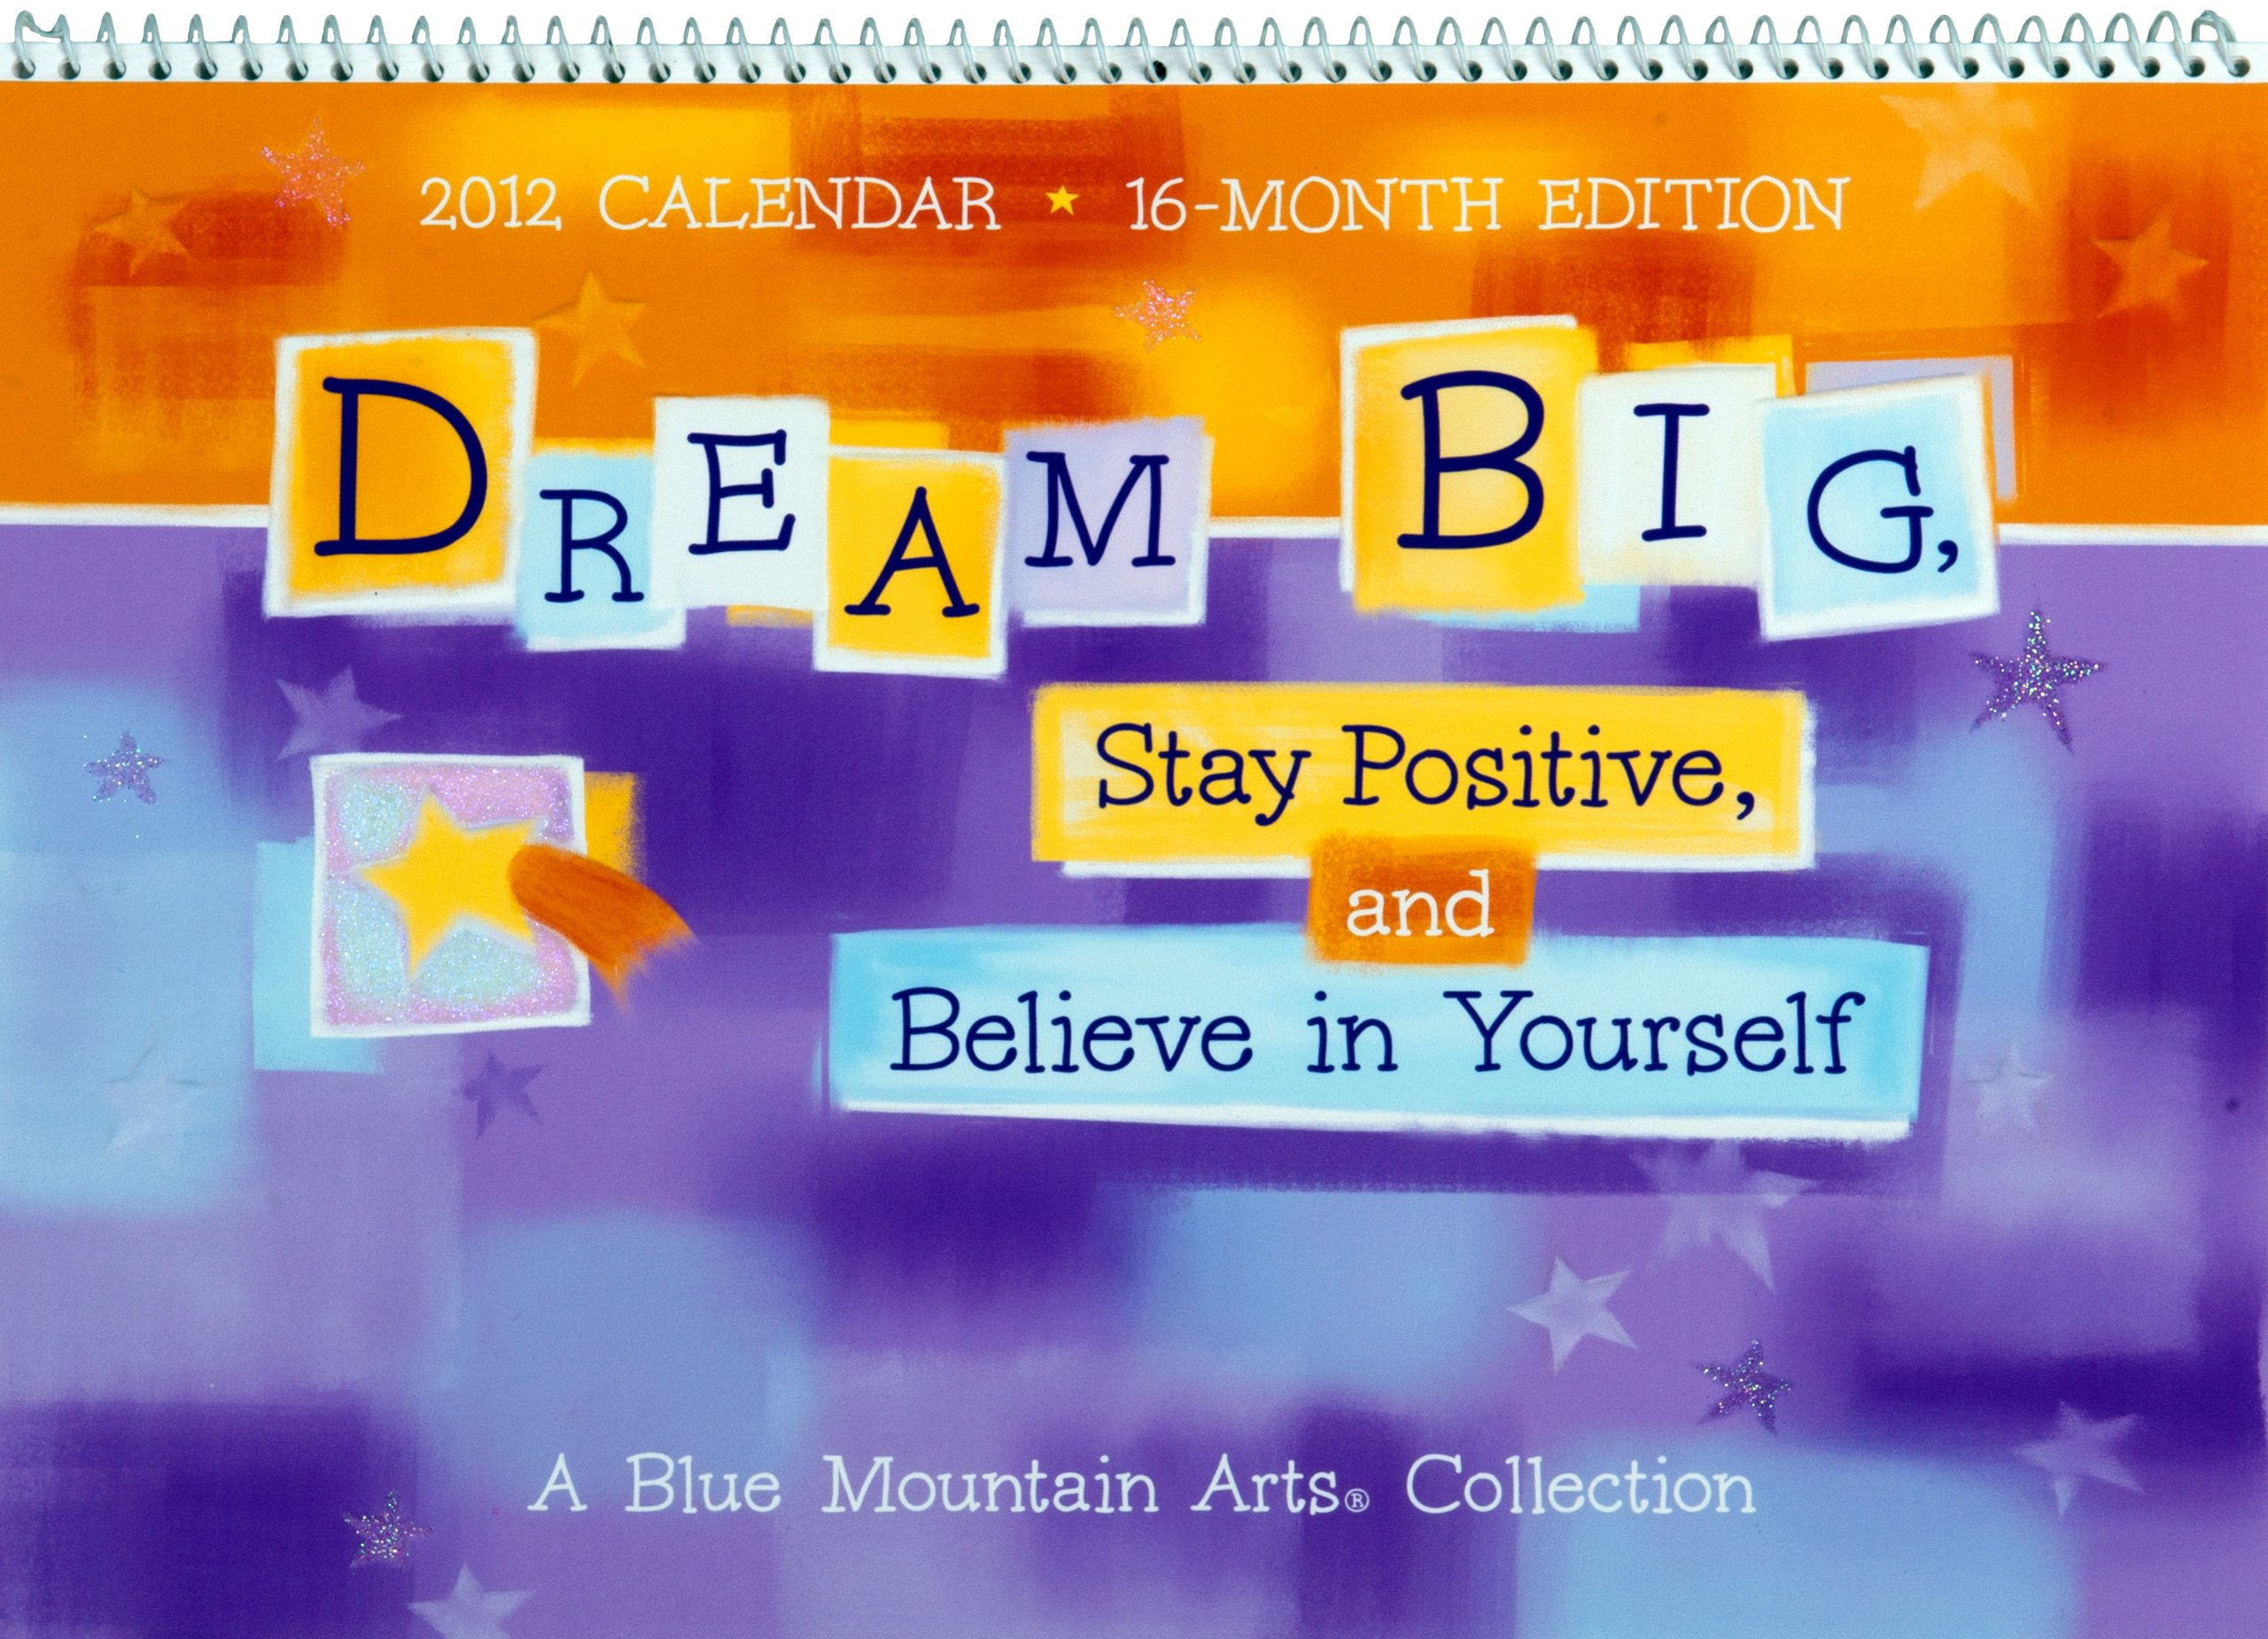 Dream big stay positive and believe in yourself 2012 calendar dream big stay positive and believe in yourself 2012 calendar blue mountain arts collection calendars blue mountain arts 9781598425819 amazon solutioingenieria Choice Image